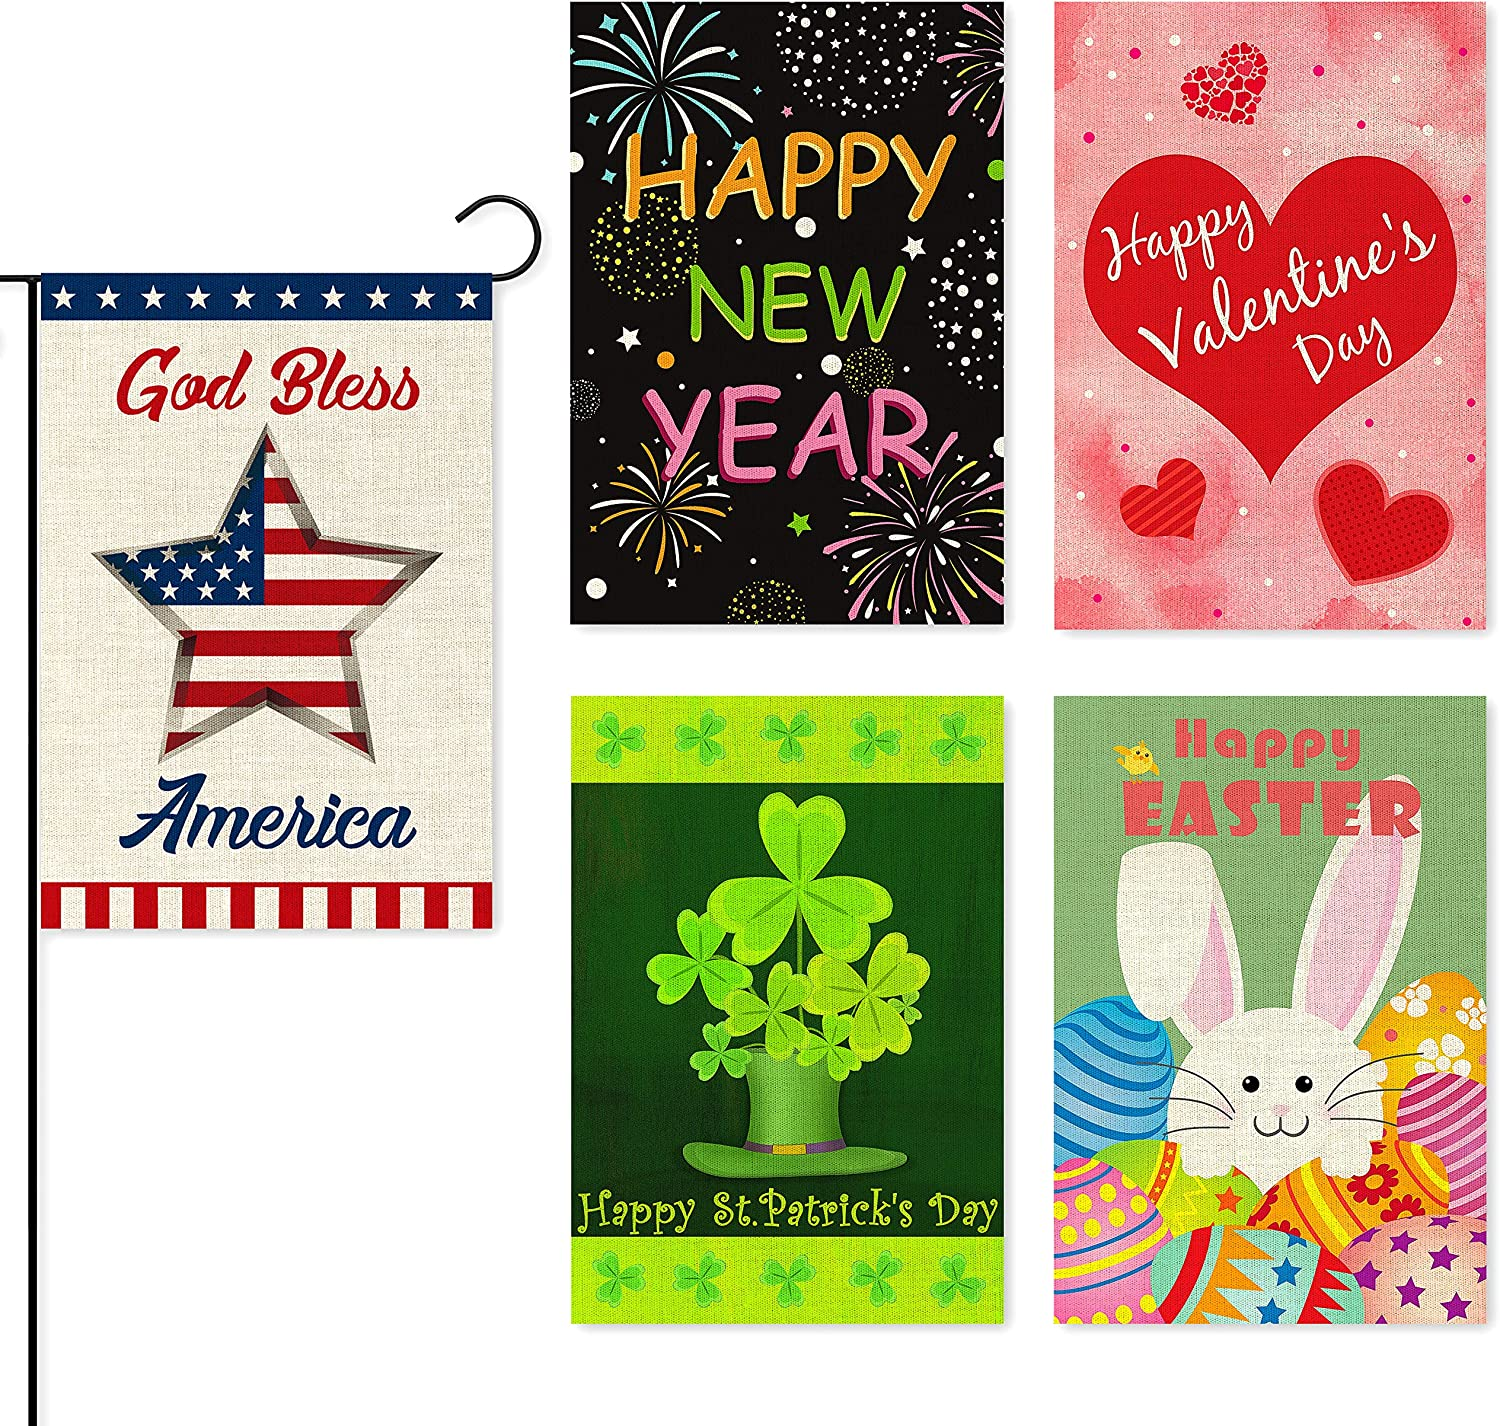 WATINC 5Pcs Welcome Garden Flag for Happy New Year Holiday Decorations Valentine's Day St. Patrick's Easter Independence Day Double Sided Burlap Seasonal House Flags for Outdoor Yard 12.4 x 18.2 Inch